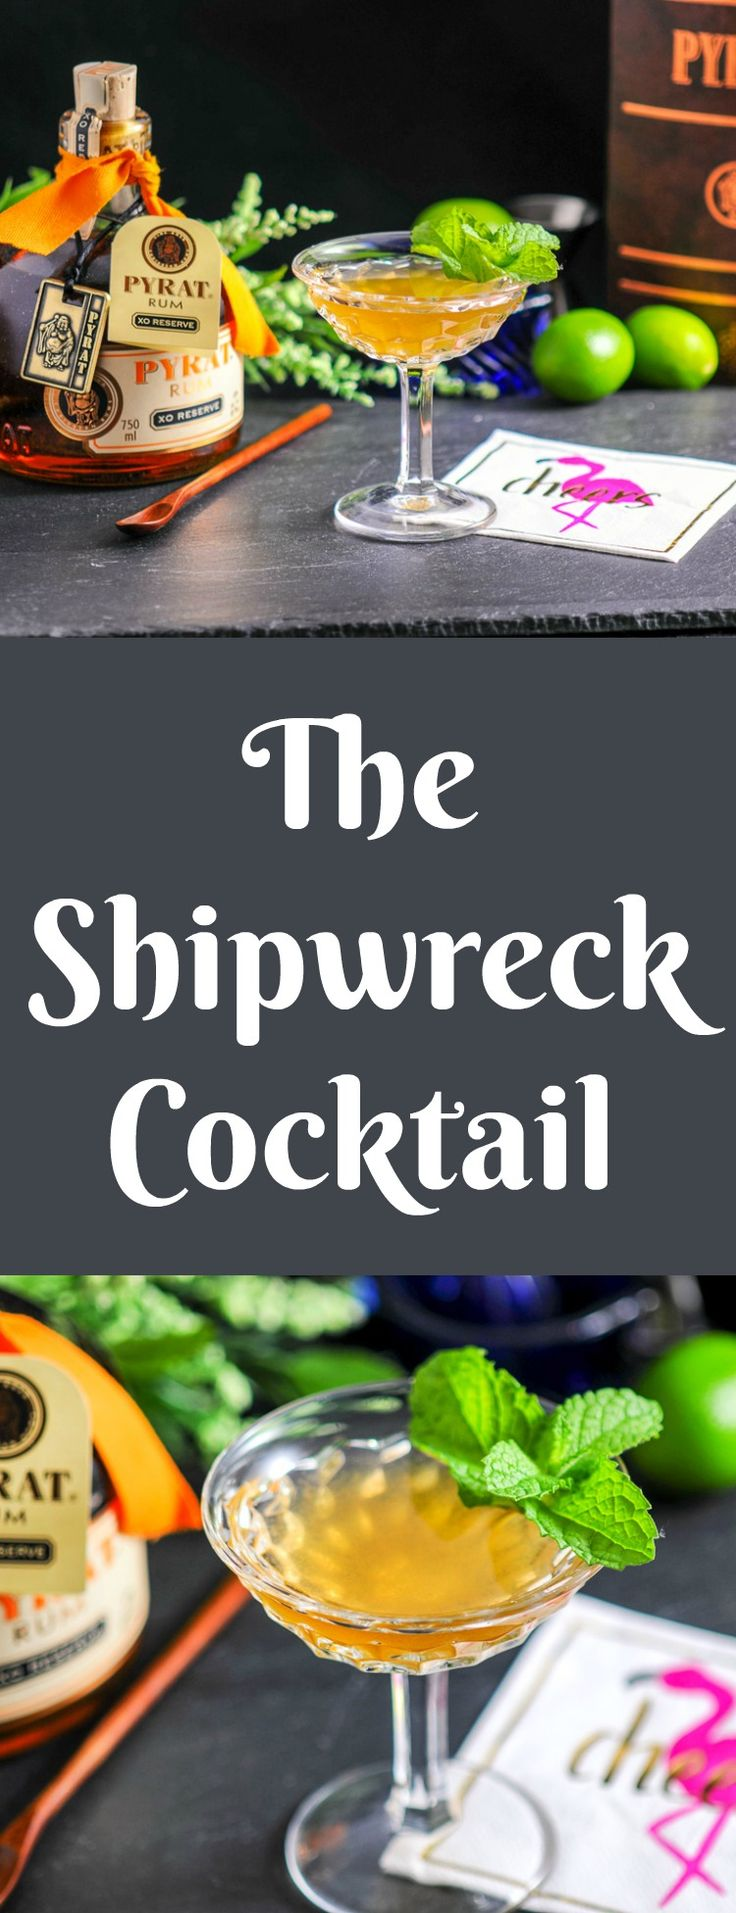 The Shipwreck cocktail - aged dark rum, lillet blanc, grapefruit simple syrup and lime. Craft cocktail for a perfect rum day!